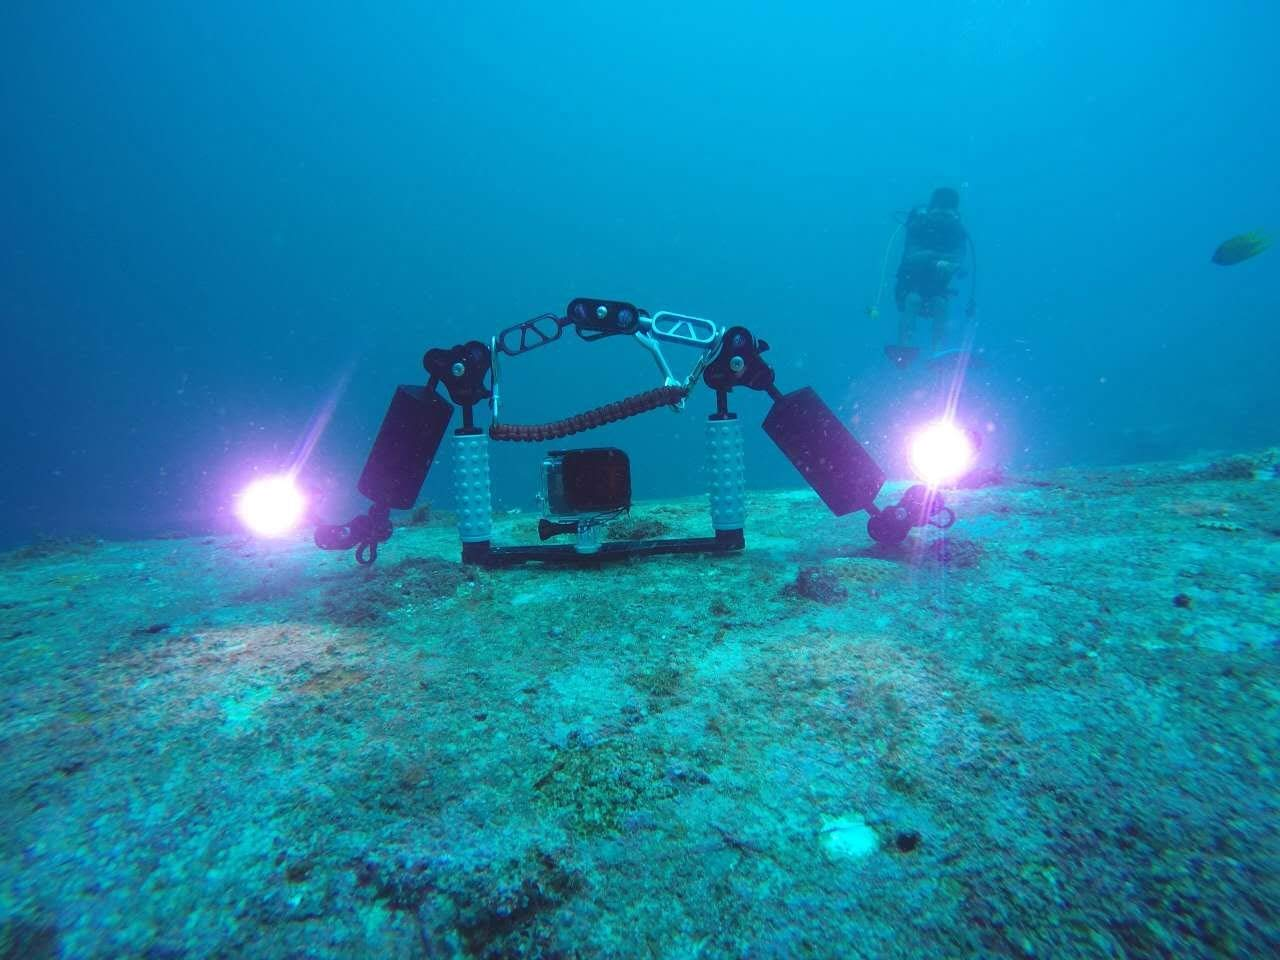 Ano V520 Dive Video Light 2000 Lumen with 2 Power Settings Included ICR18650 Battery and USB Charger Scuba Underwater Photography Light Waterproof 650ft by Ano (Image #3)